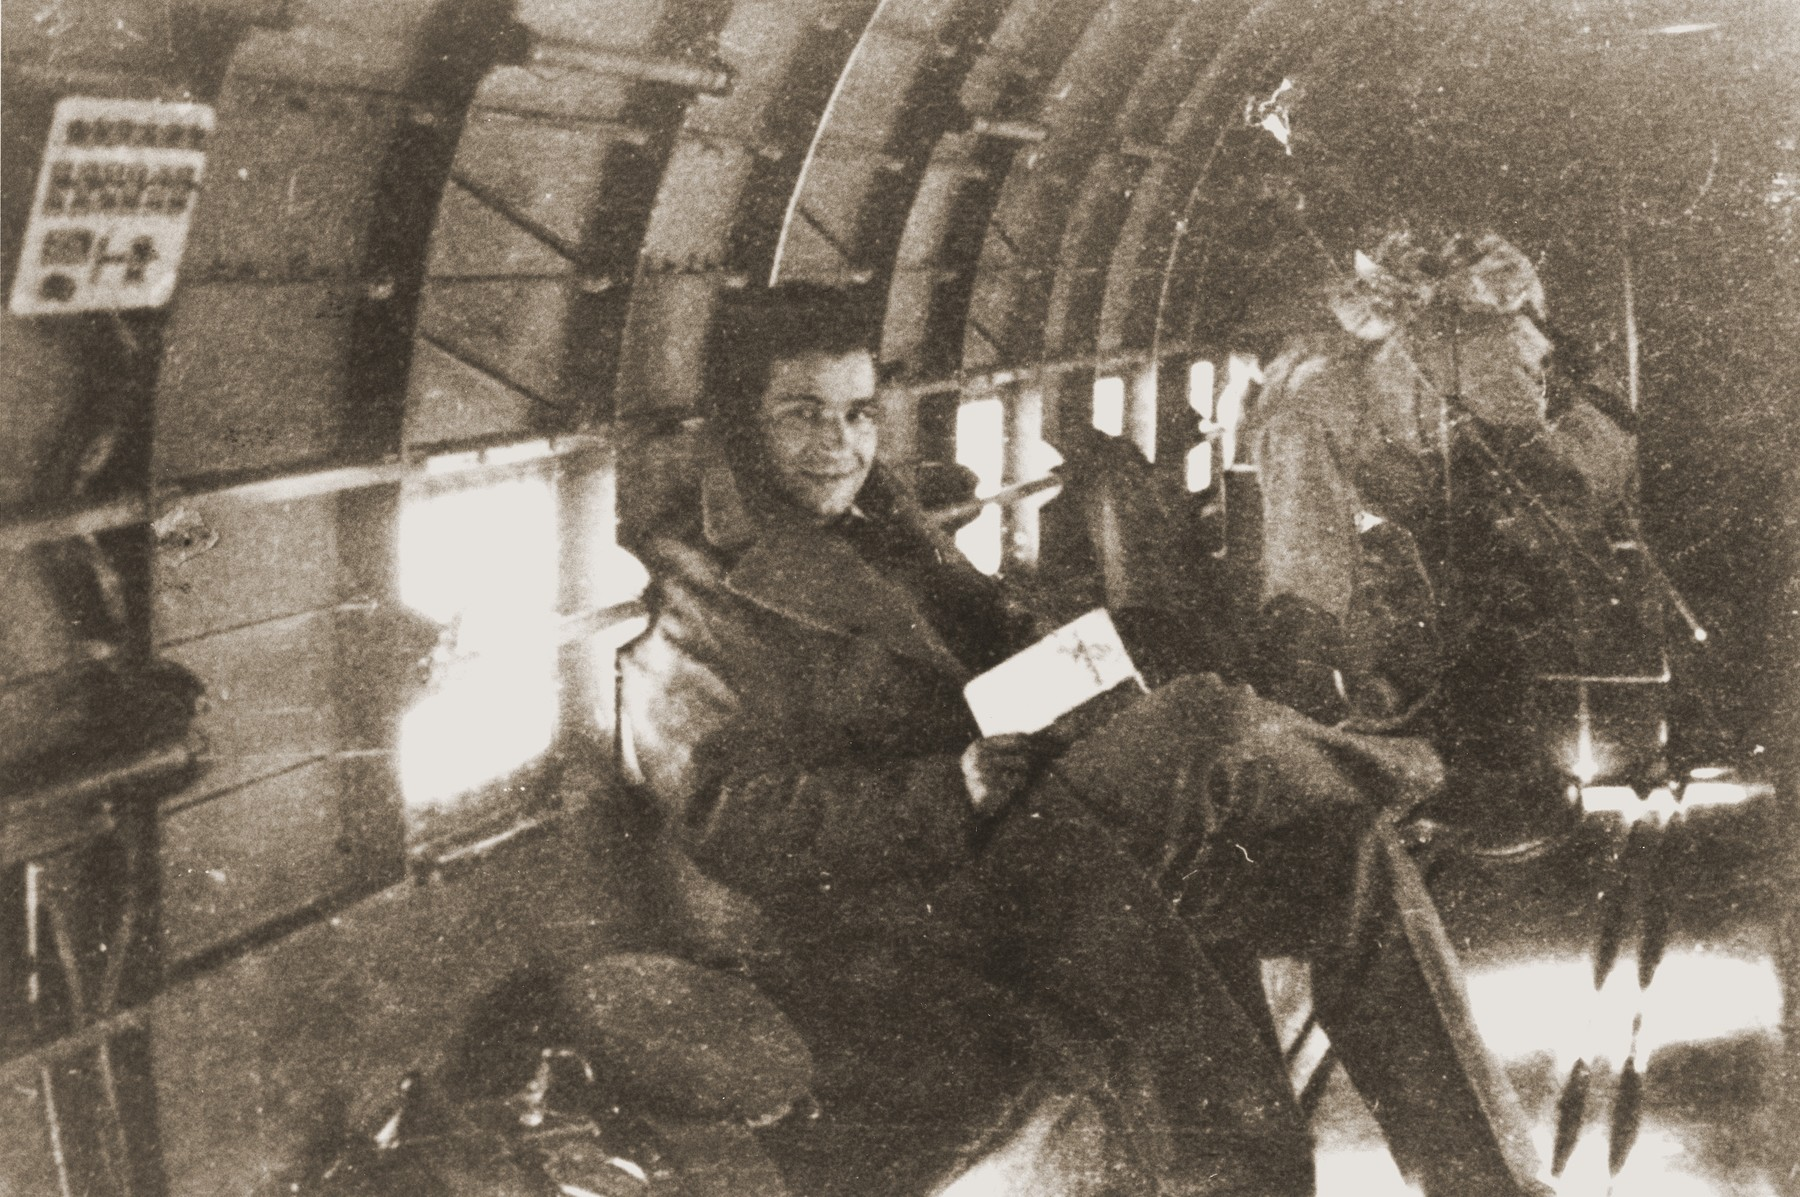 Palestinian Jewish parachutist Uriel Kanner on board an airplane before being dropped into Yugoslavia.